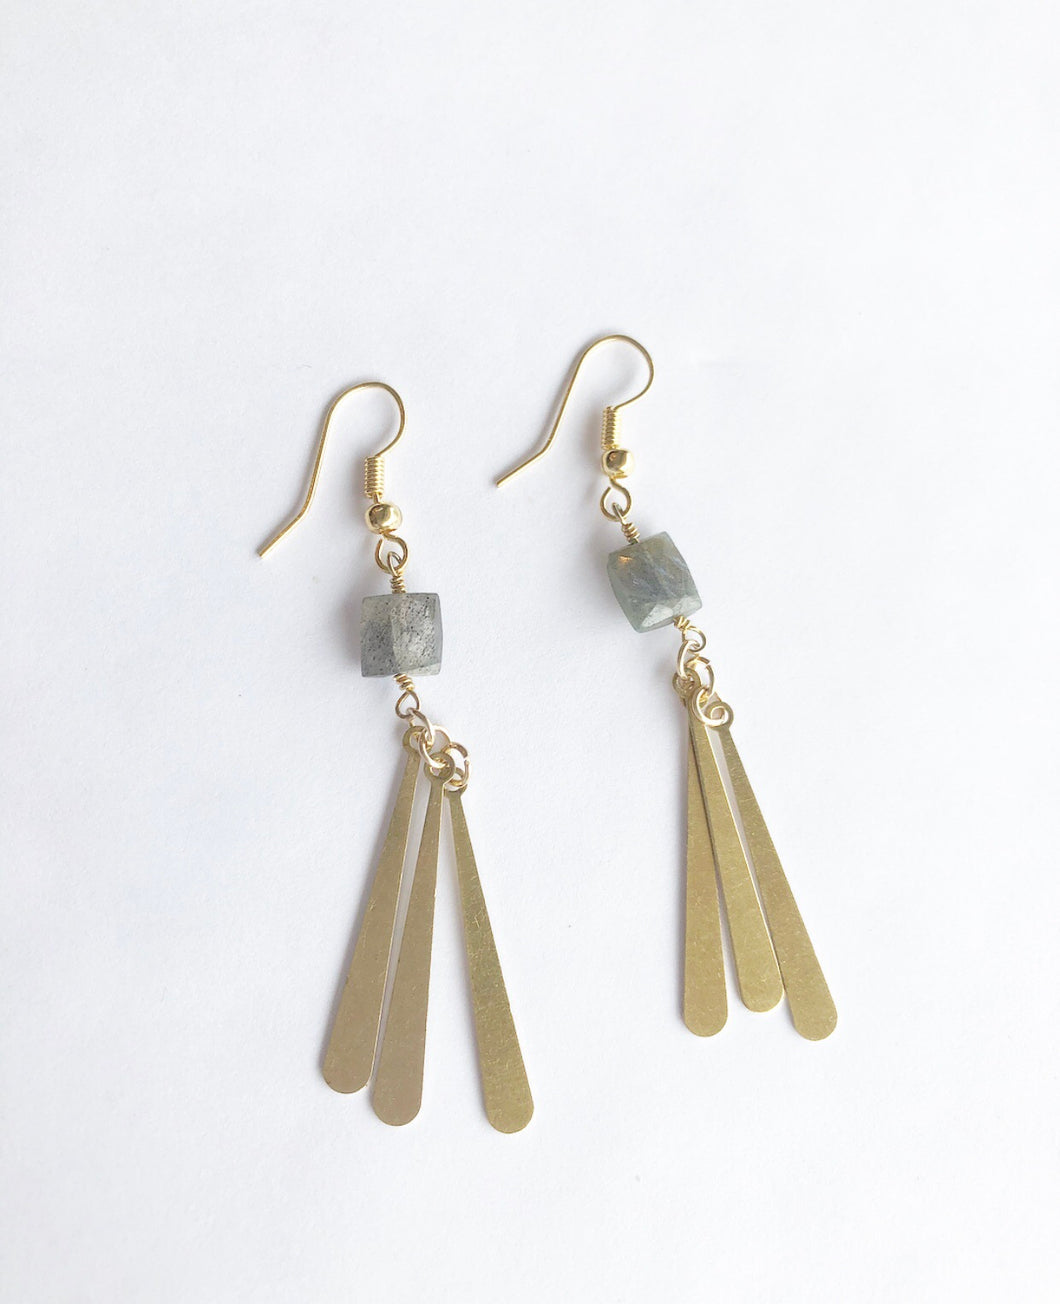 Labradorite and Vintage Spikes Earrings